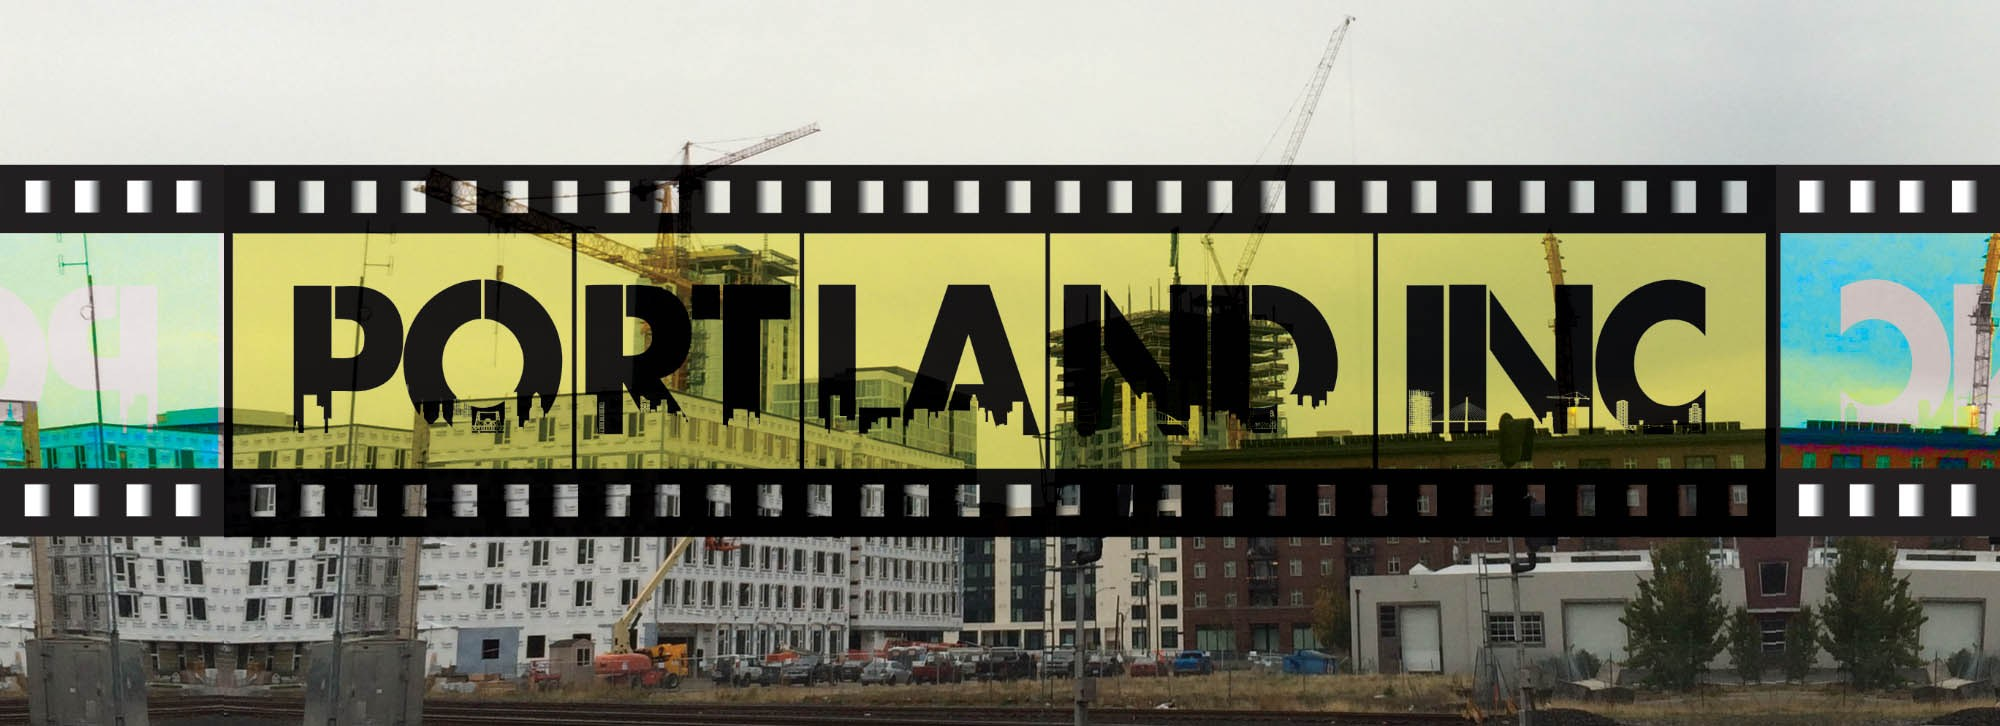 portland inc film banner kristen kingsbury pippin beard oregon film video production portland